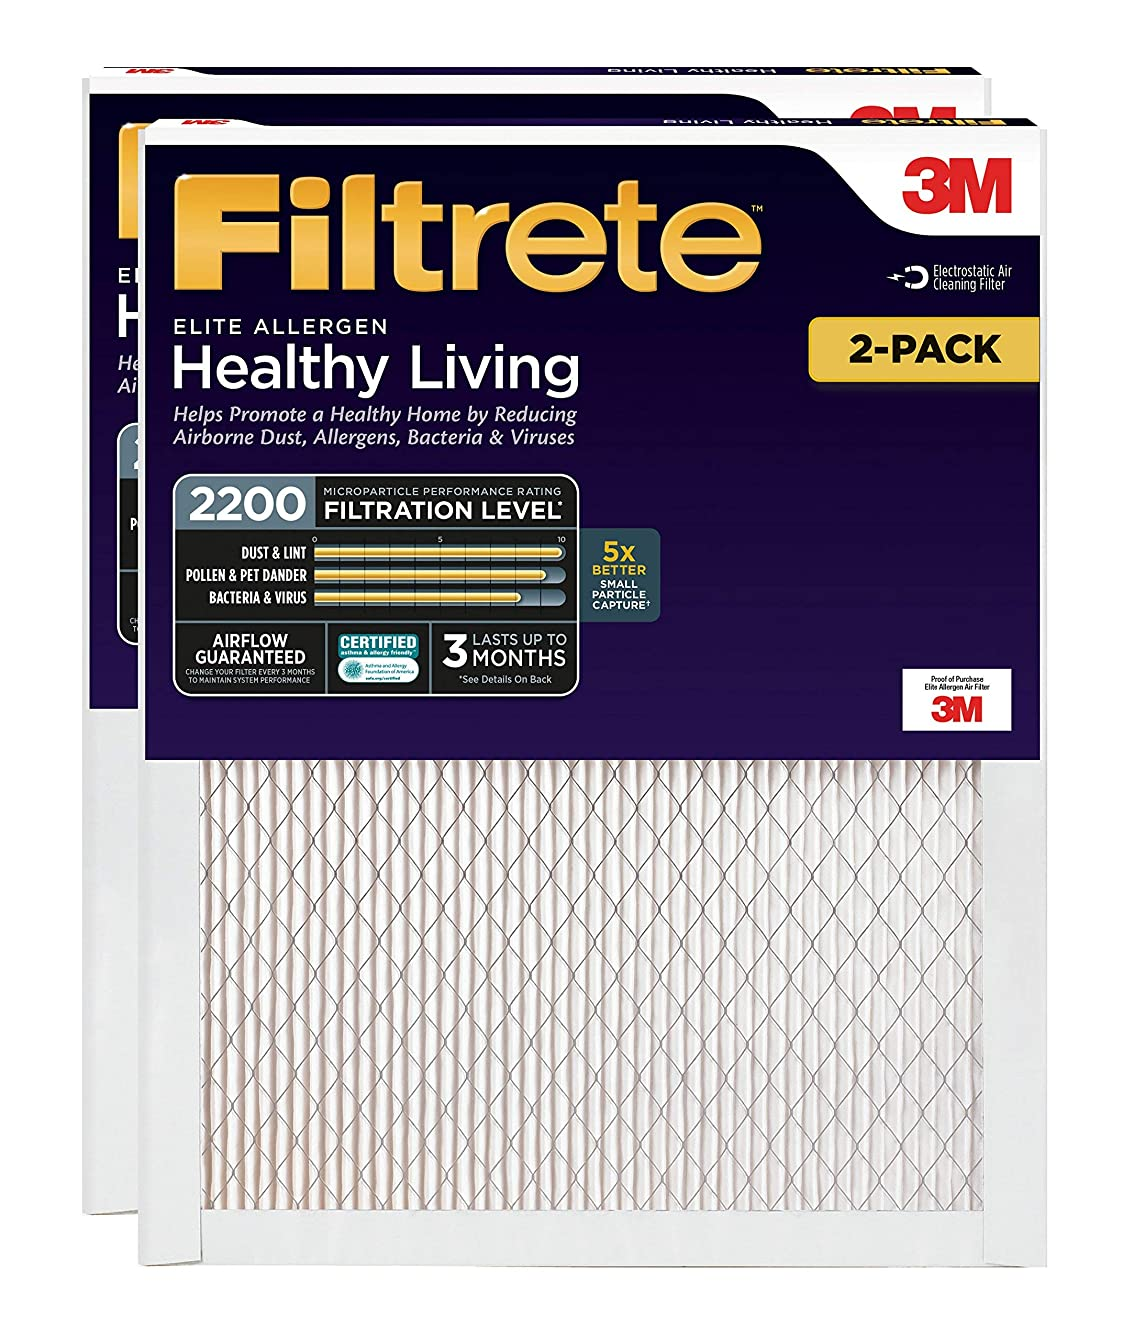 Filtrete 14x24x1, AC Furnace Air Filter, MPR 2200, Healthy Living Elite Allergen, 2-Pack (Renewed)